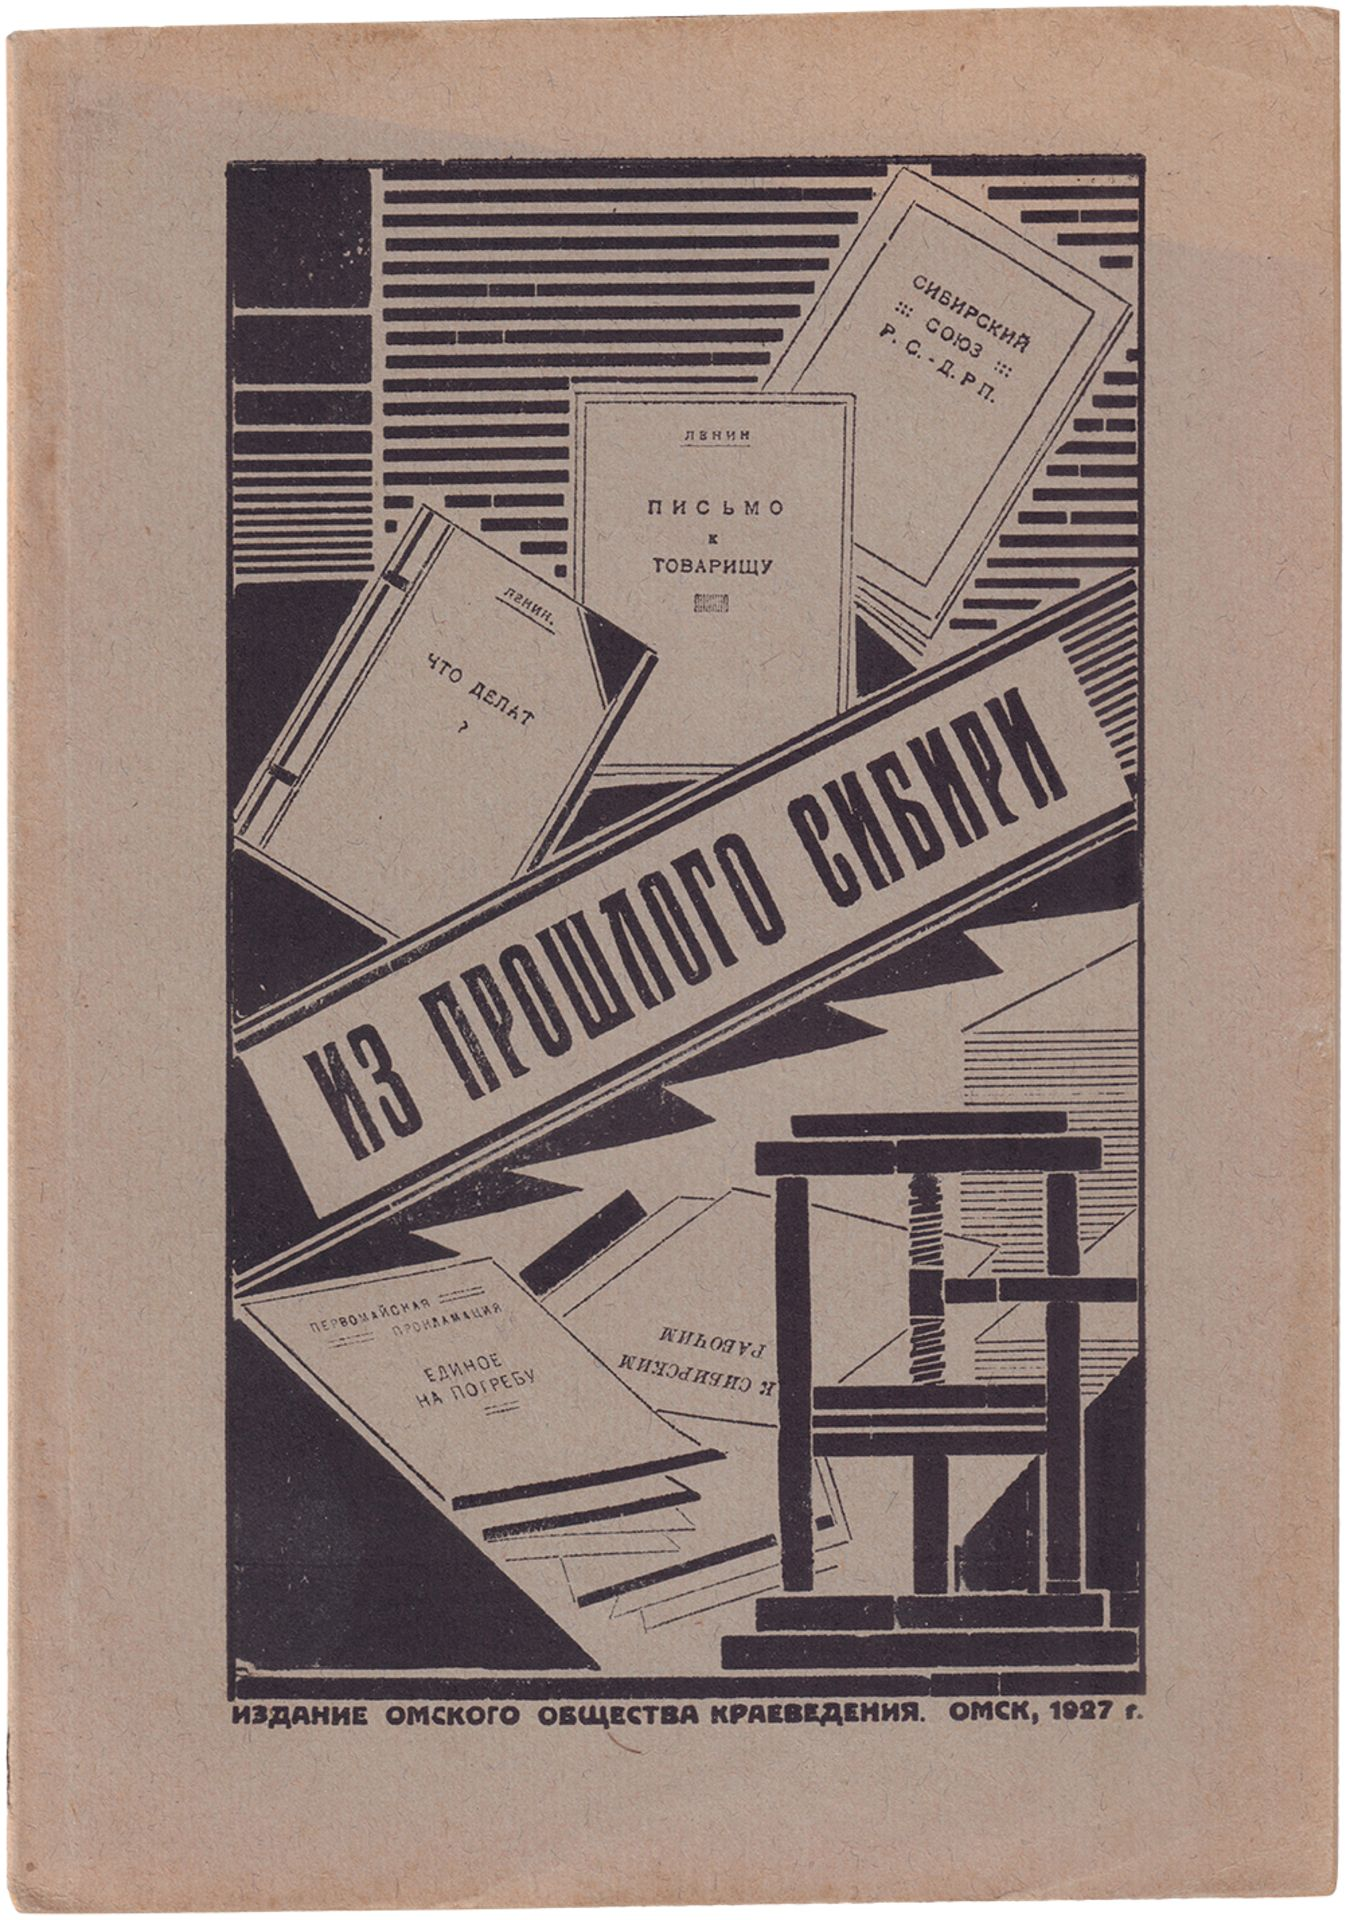 [Soviet art]. From the past of Siberia. Omsk, 1927. - 95, III pp.; 24x17 cm.<br>Original illustrated